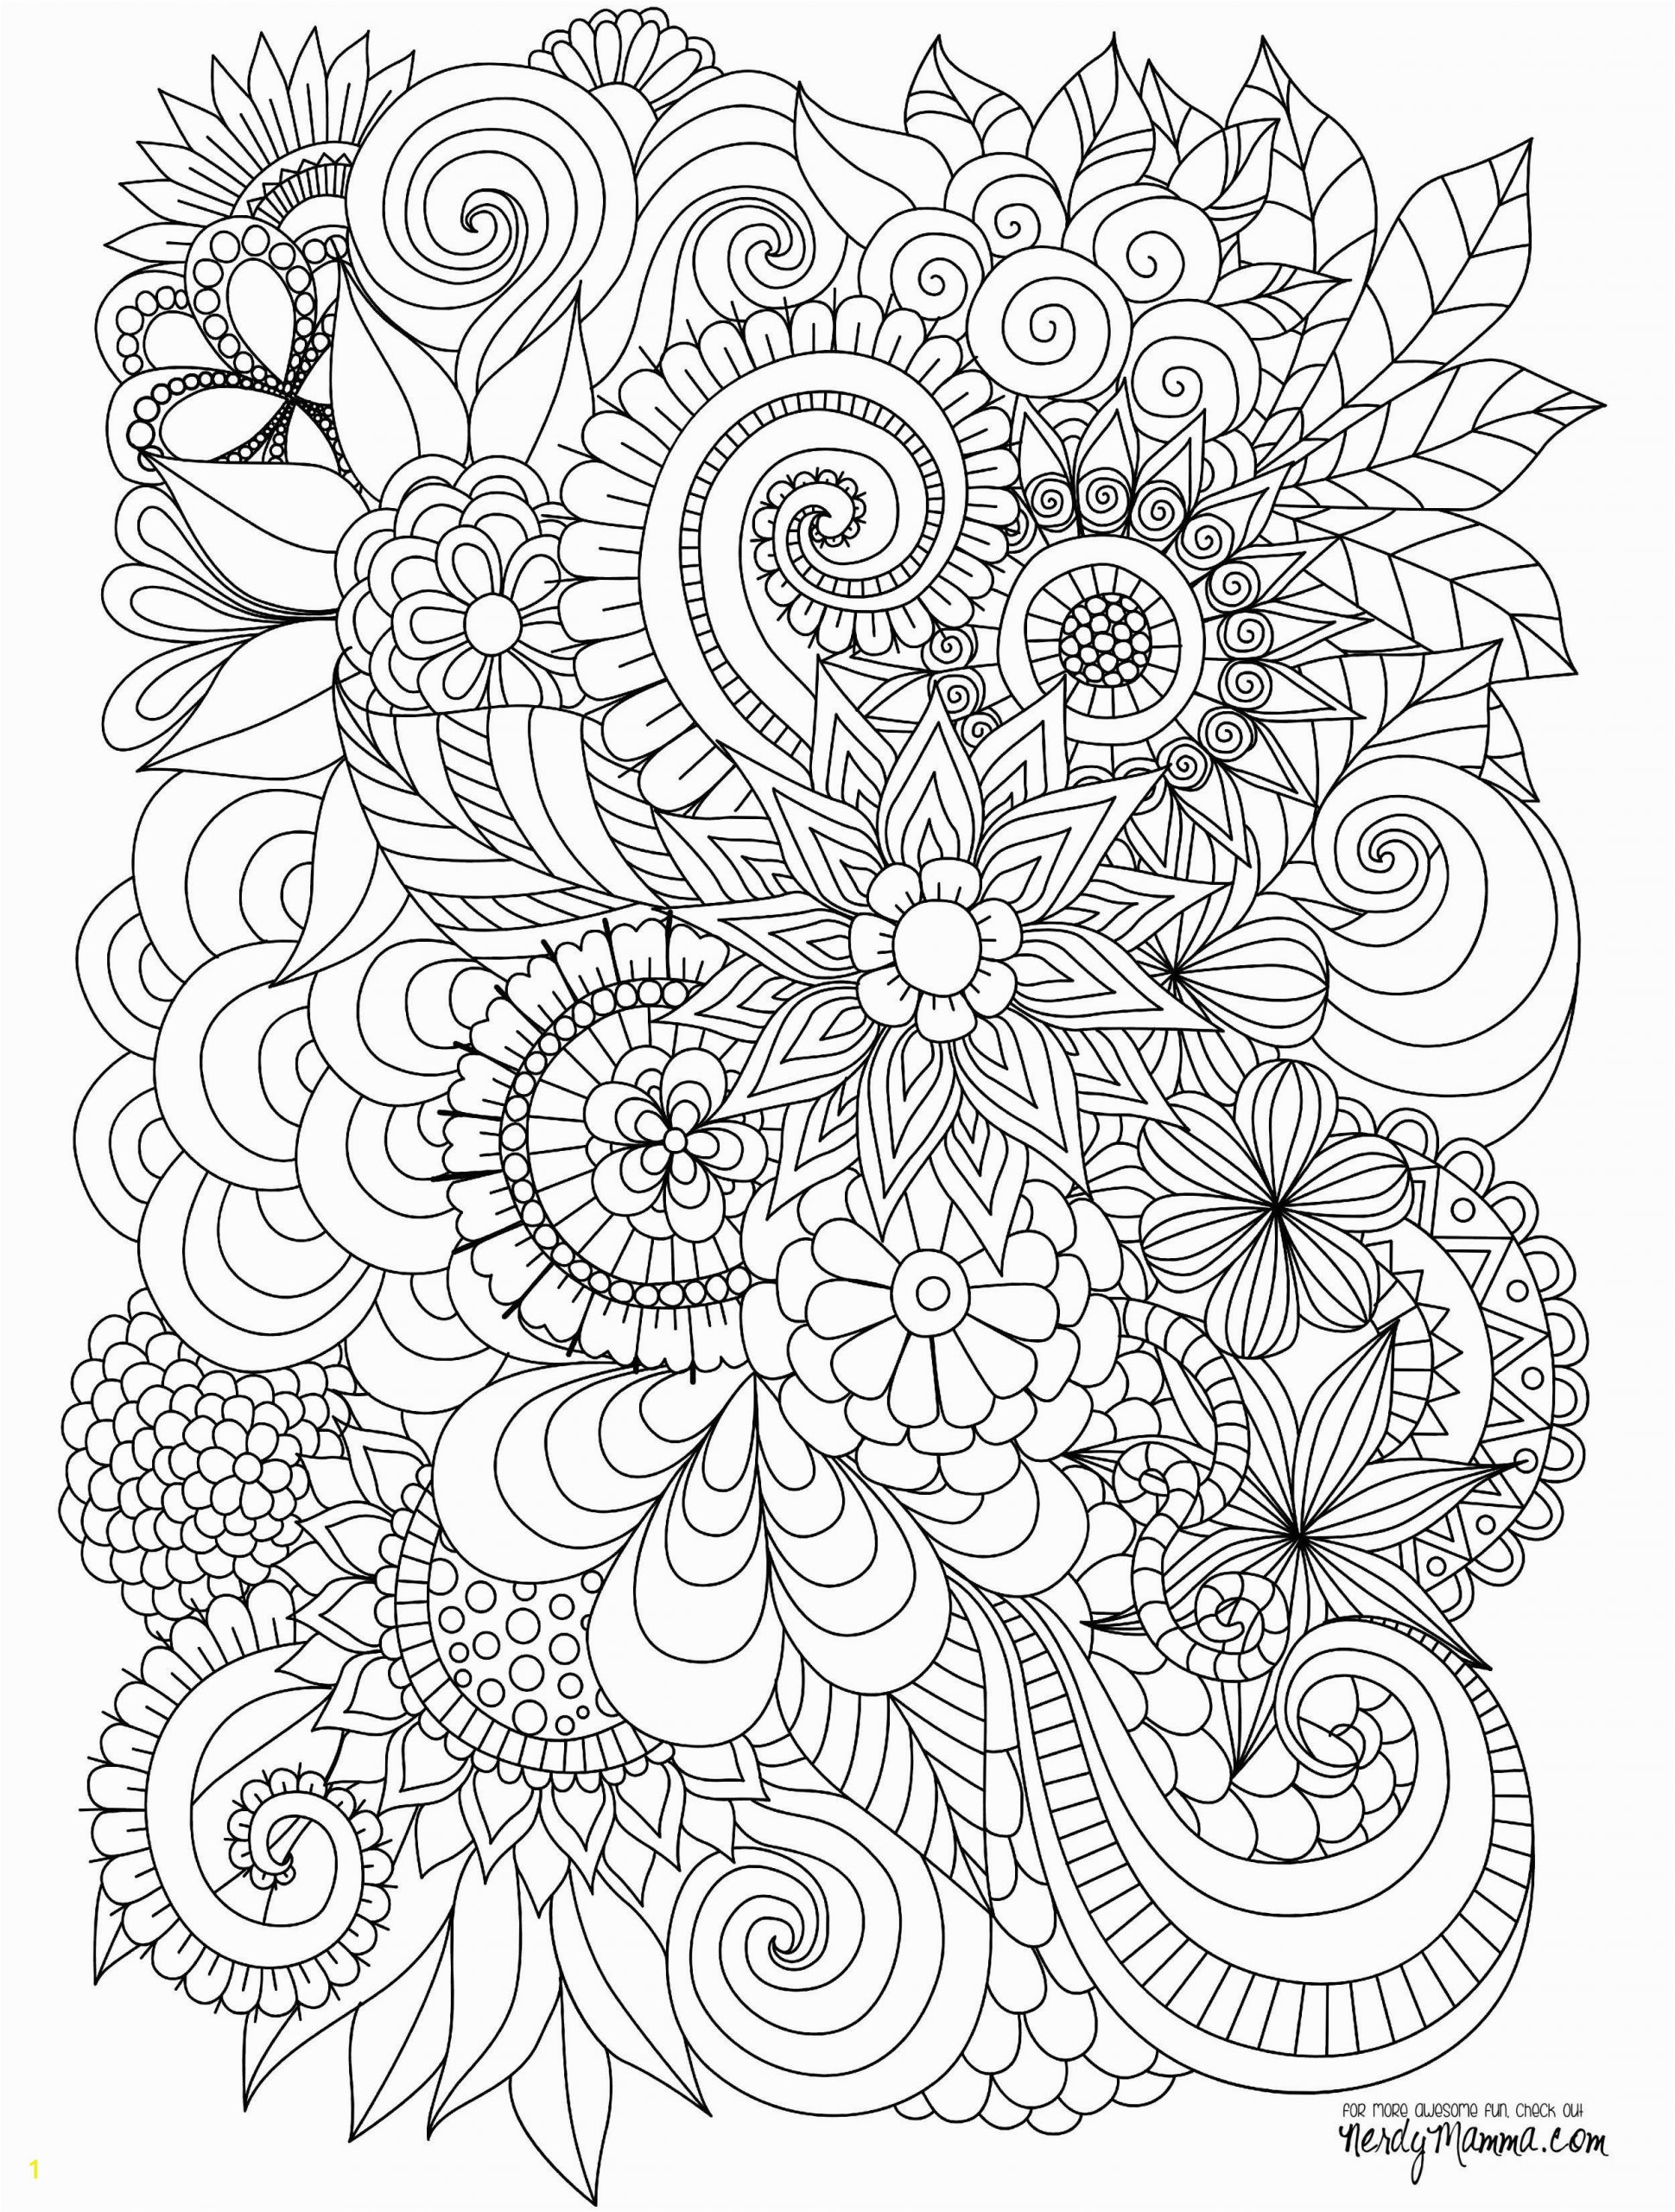 Coloring Pages for Adults Flowers 11 Free Printable Adult Coloring Pages